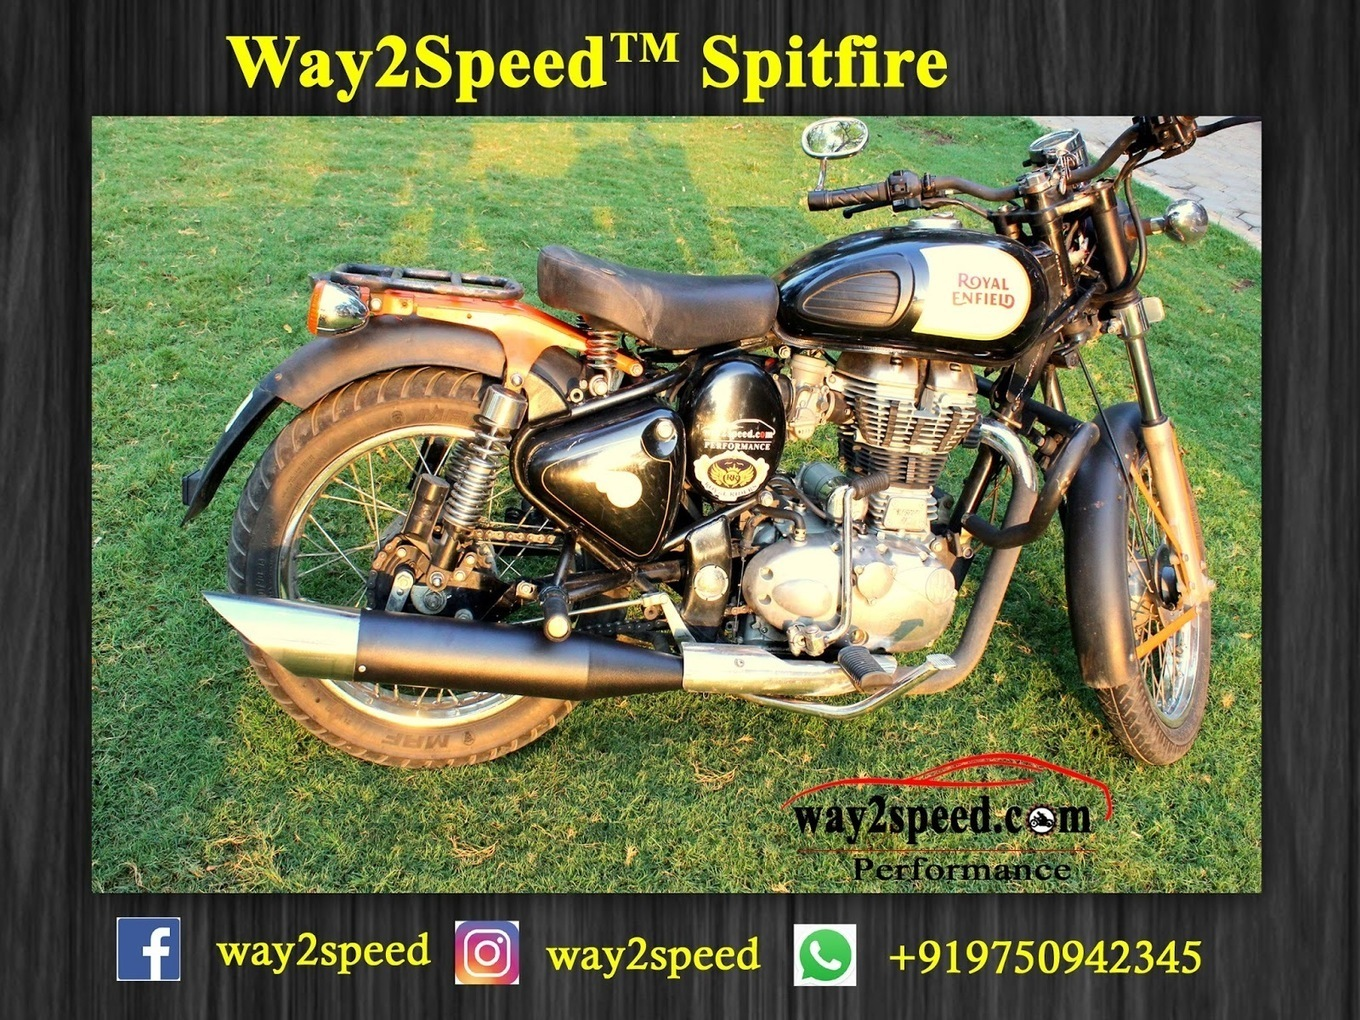 Way2speed Spitfire Silencer For Royal Enfield Two Brothers Kawasaki Ninja 650 M 2 Silver Series 1 Full Exhaust System 2012 16 Carbon Fiber Canister